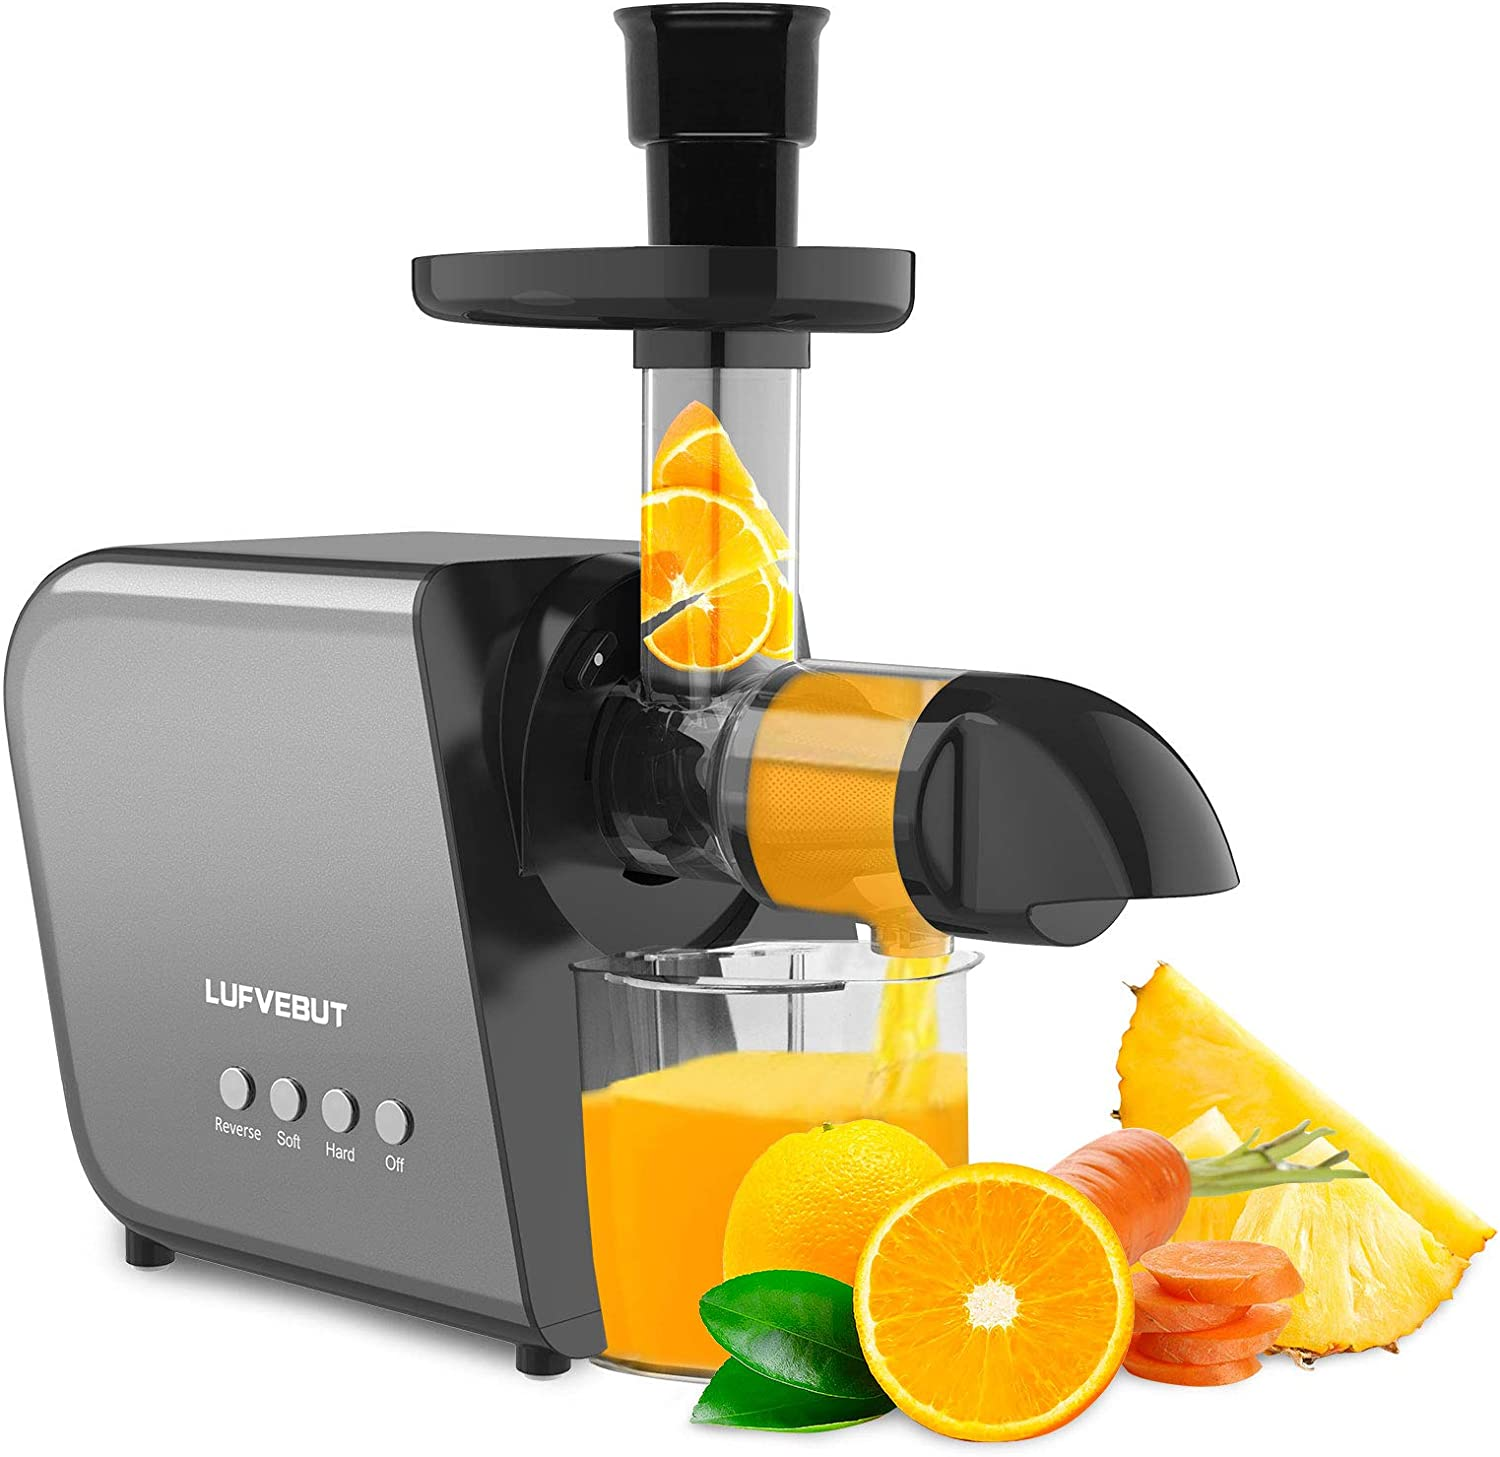 Juicer Machines 2021 Zcgiobn Slow Masticating Chewing Juicer Extractor Cold Press Easy Clean for Wheatgrass Celery Ginger Vegetable Fruit High Juice Yield Reverse Function Auger Quiet Motor